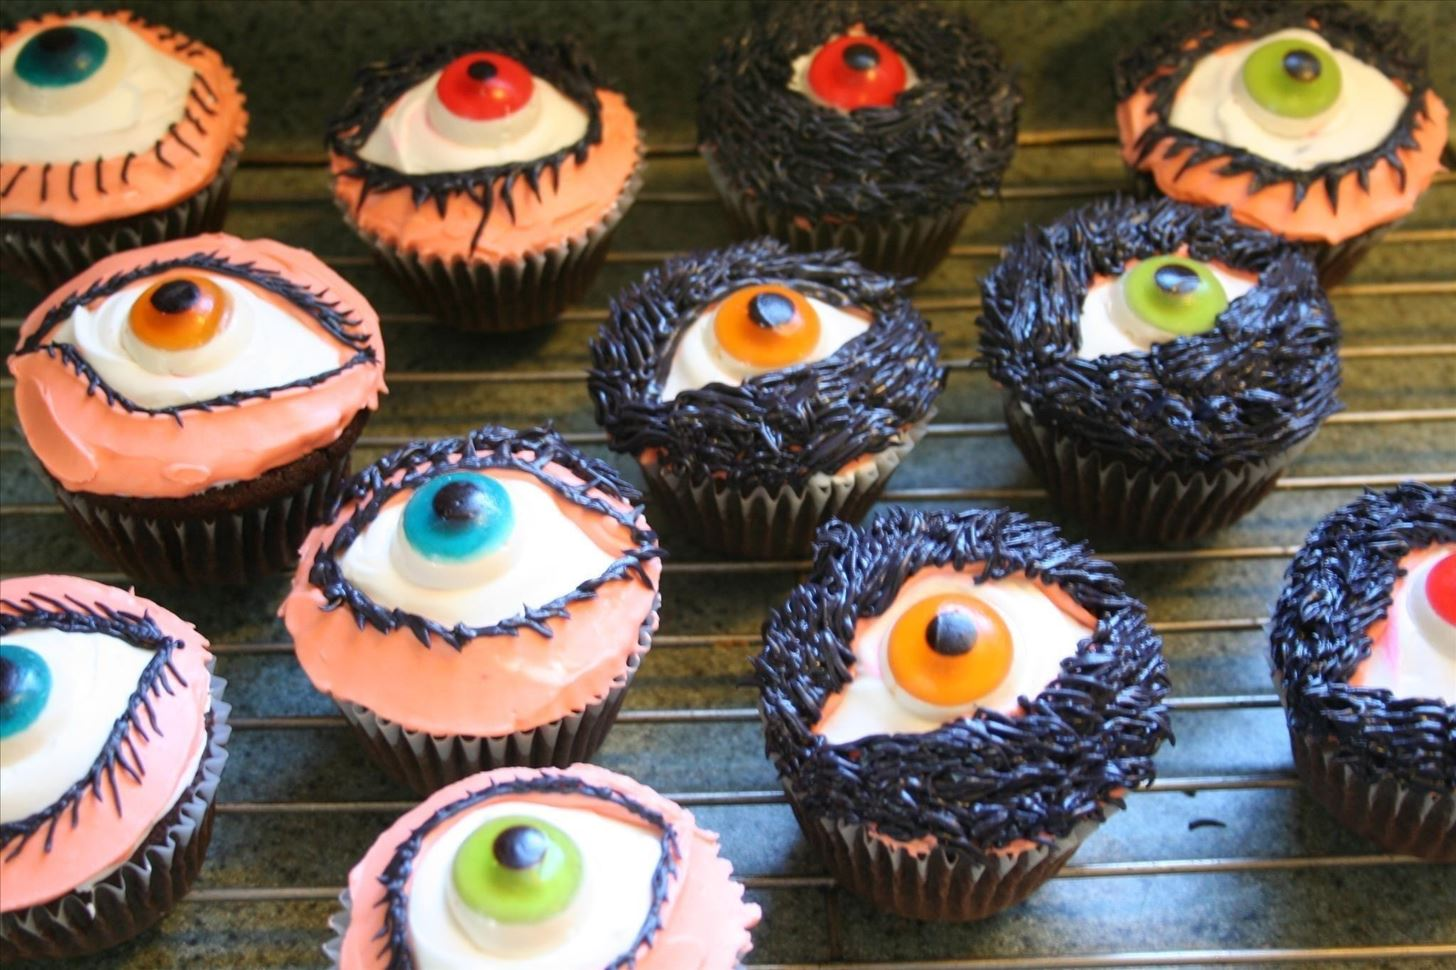 Killer Cupcakes: 6 Cute & Creepy Halloween Desserts « Food Hacks ...